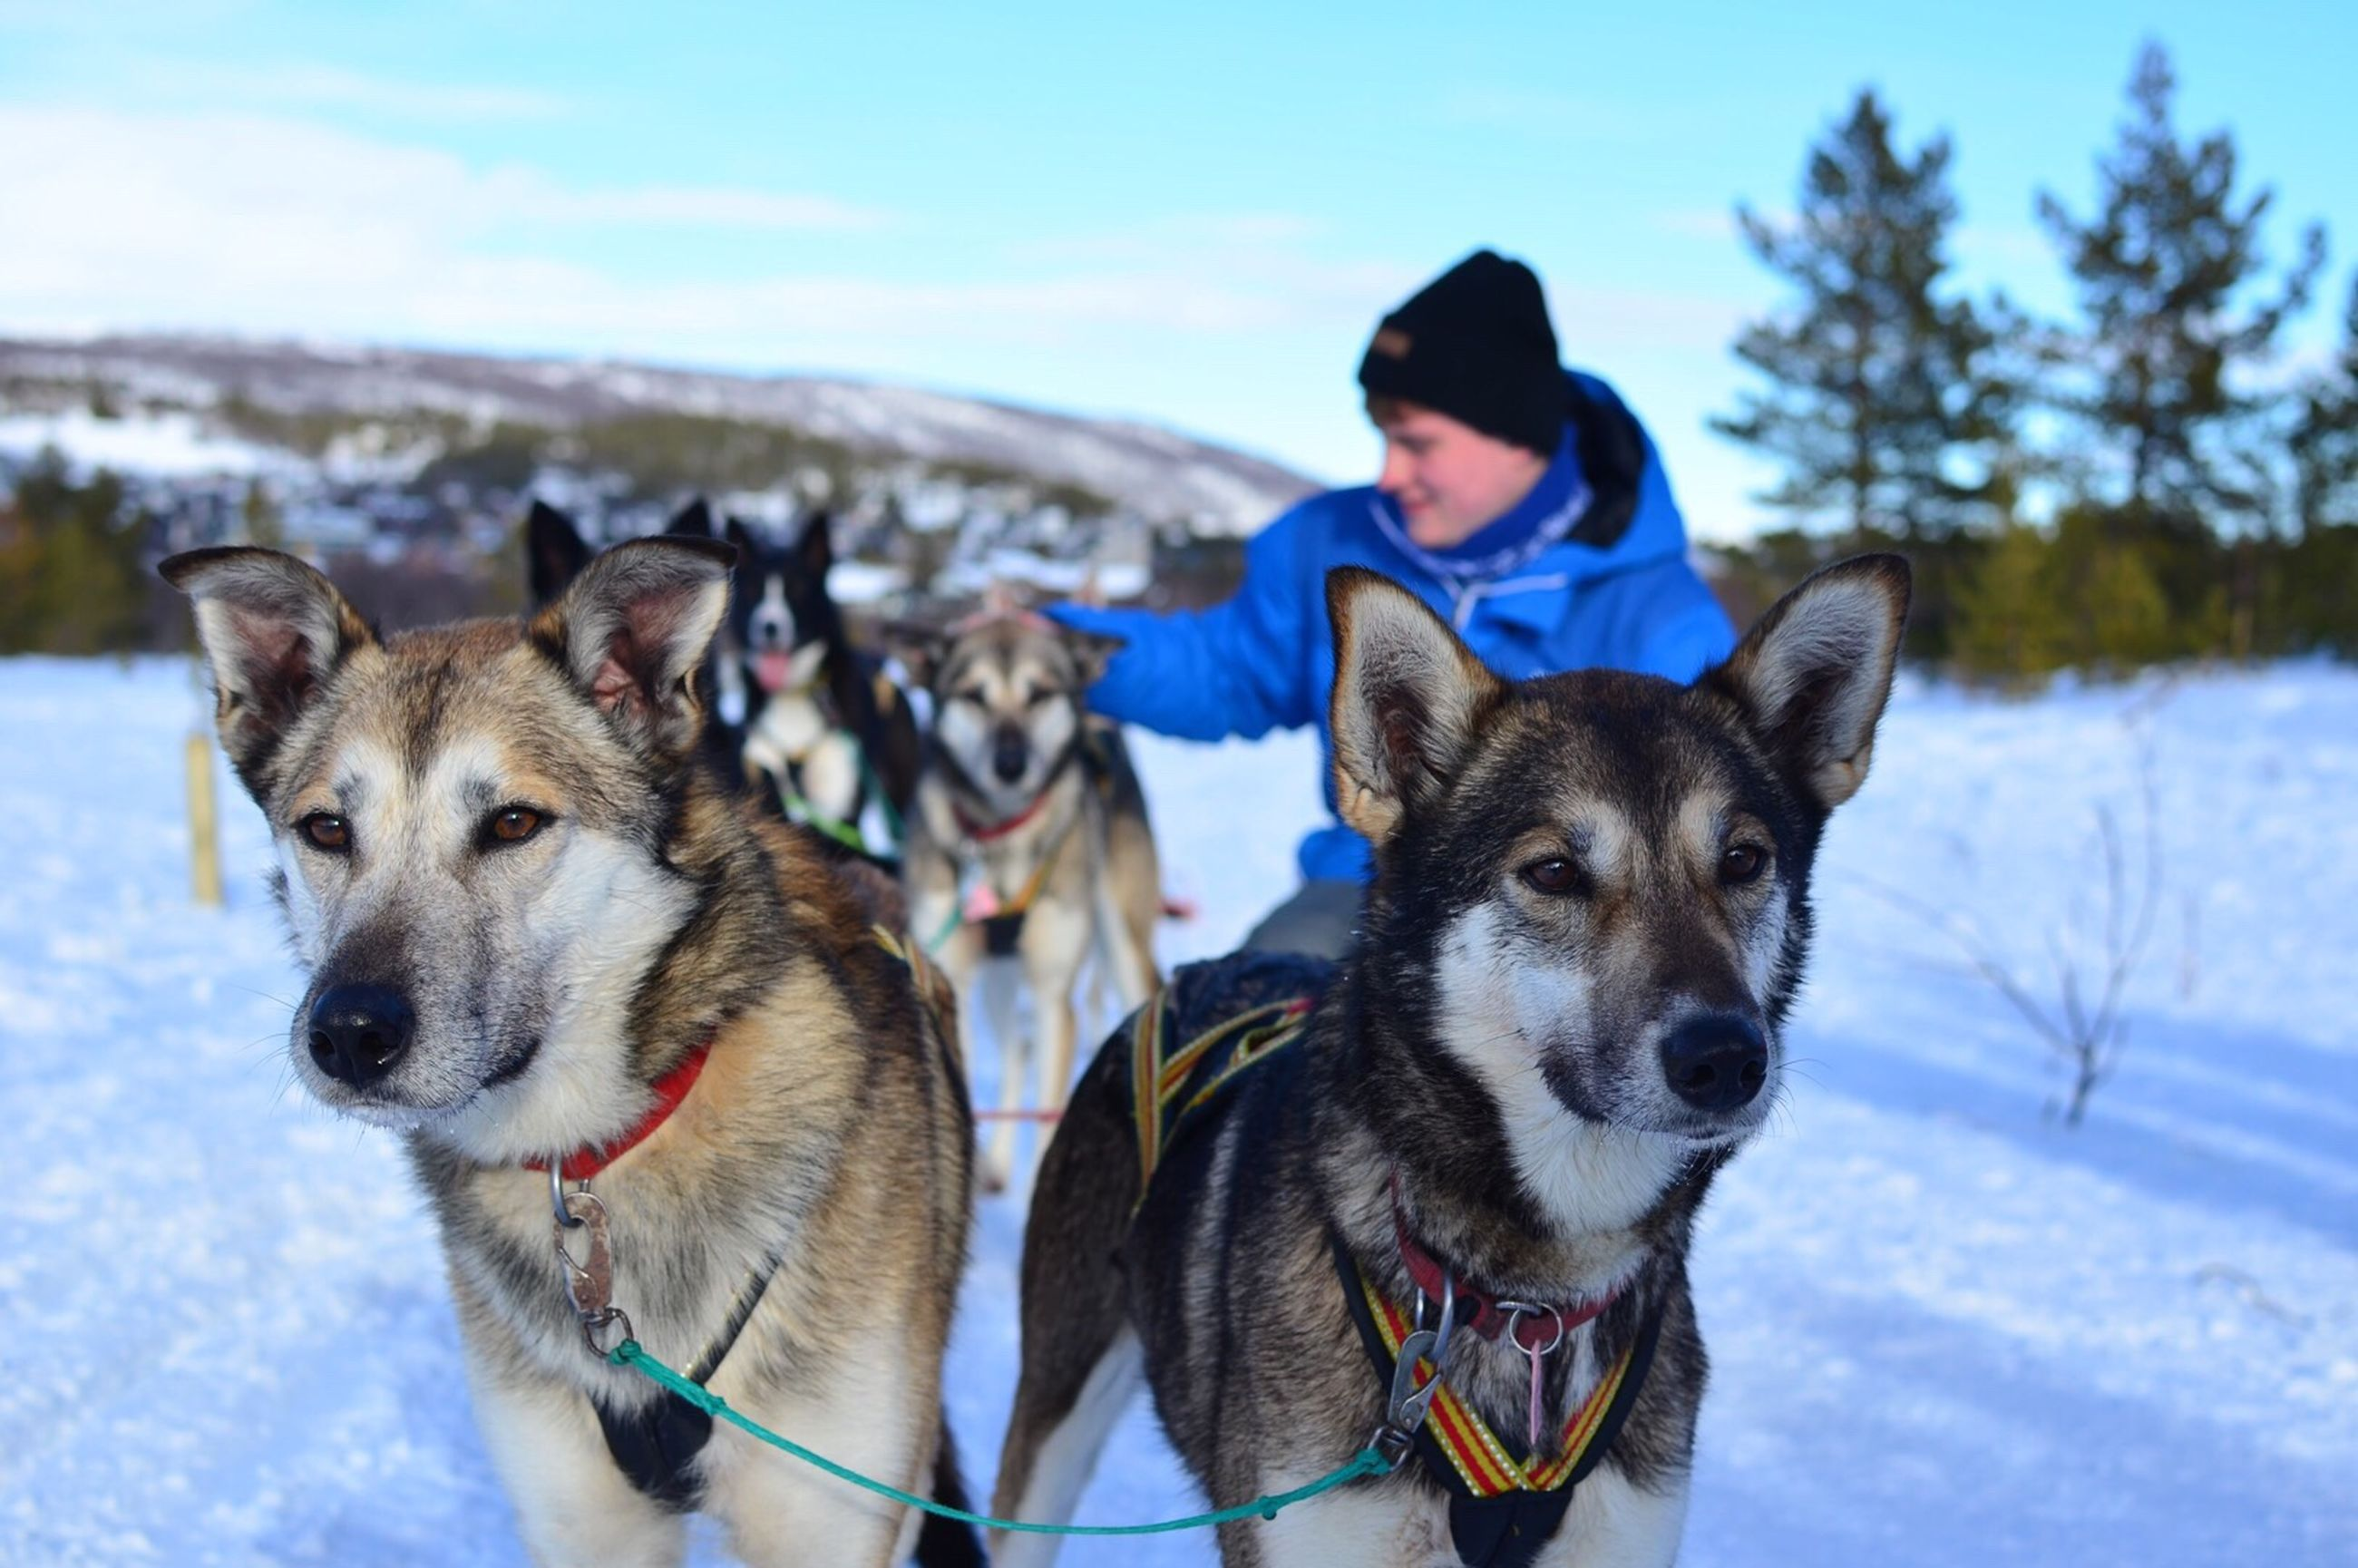 domestic animals, pets, dog, mammal, animal themes, winter, snow, one animal, cold temperature, looking at camera, portrait, lifestyles, pet collar, leisure activity, season, pet leash, focus on foreground, sky, togetherness